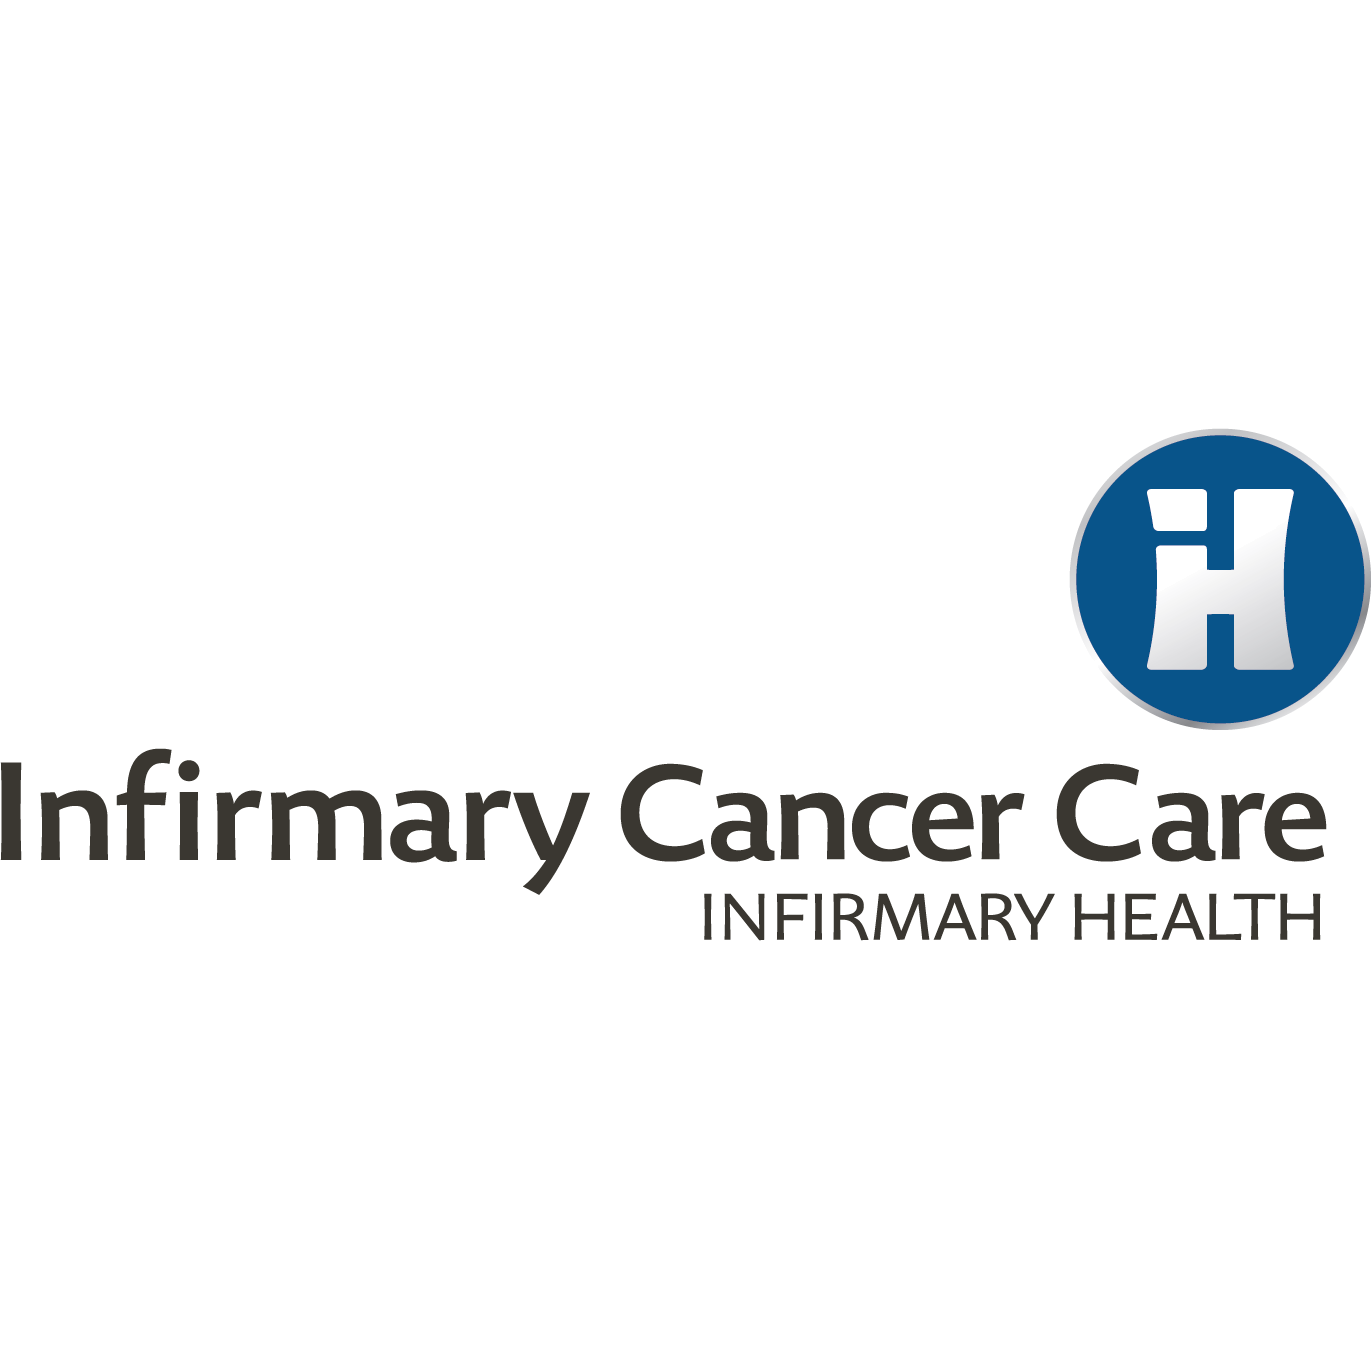 Infirmary Cancer Care image 5